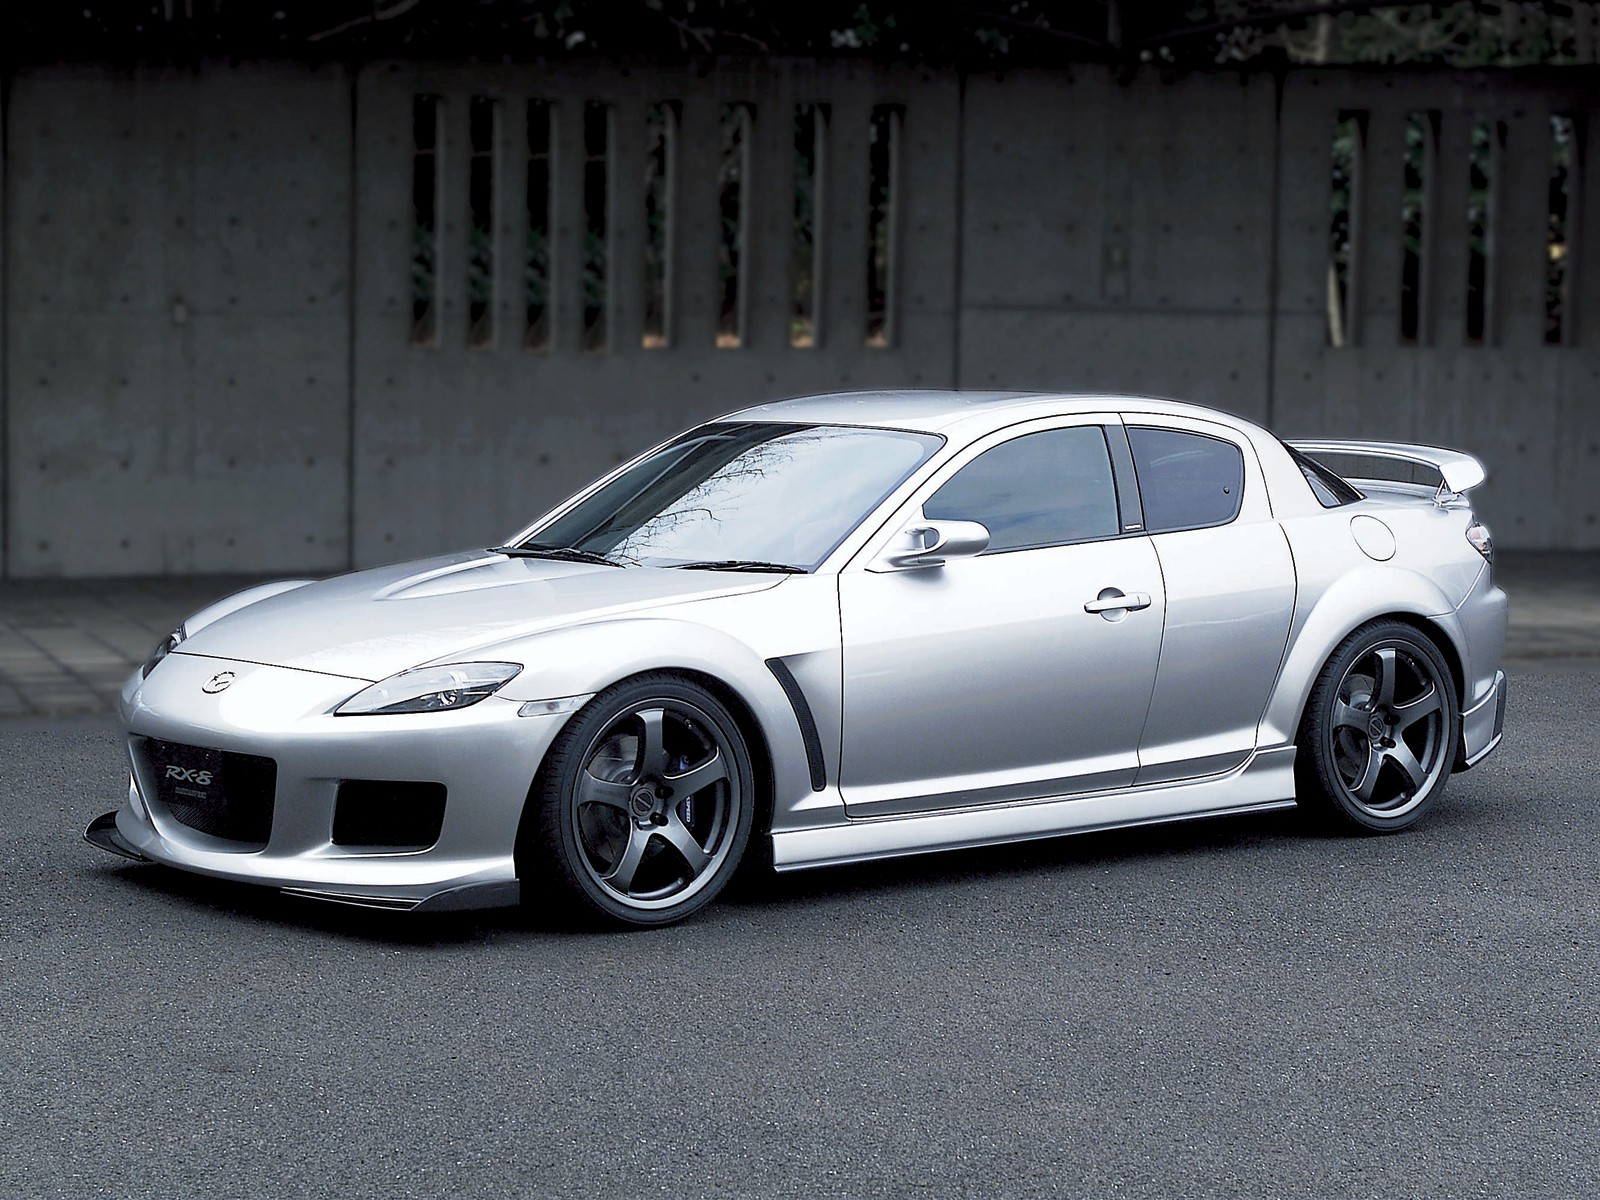 Cool Car Wallpapers: 2011 Mazda rx8